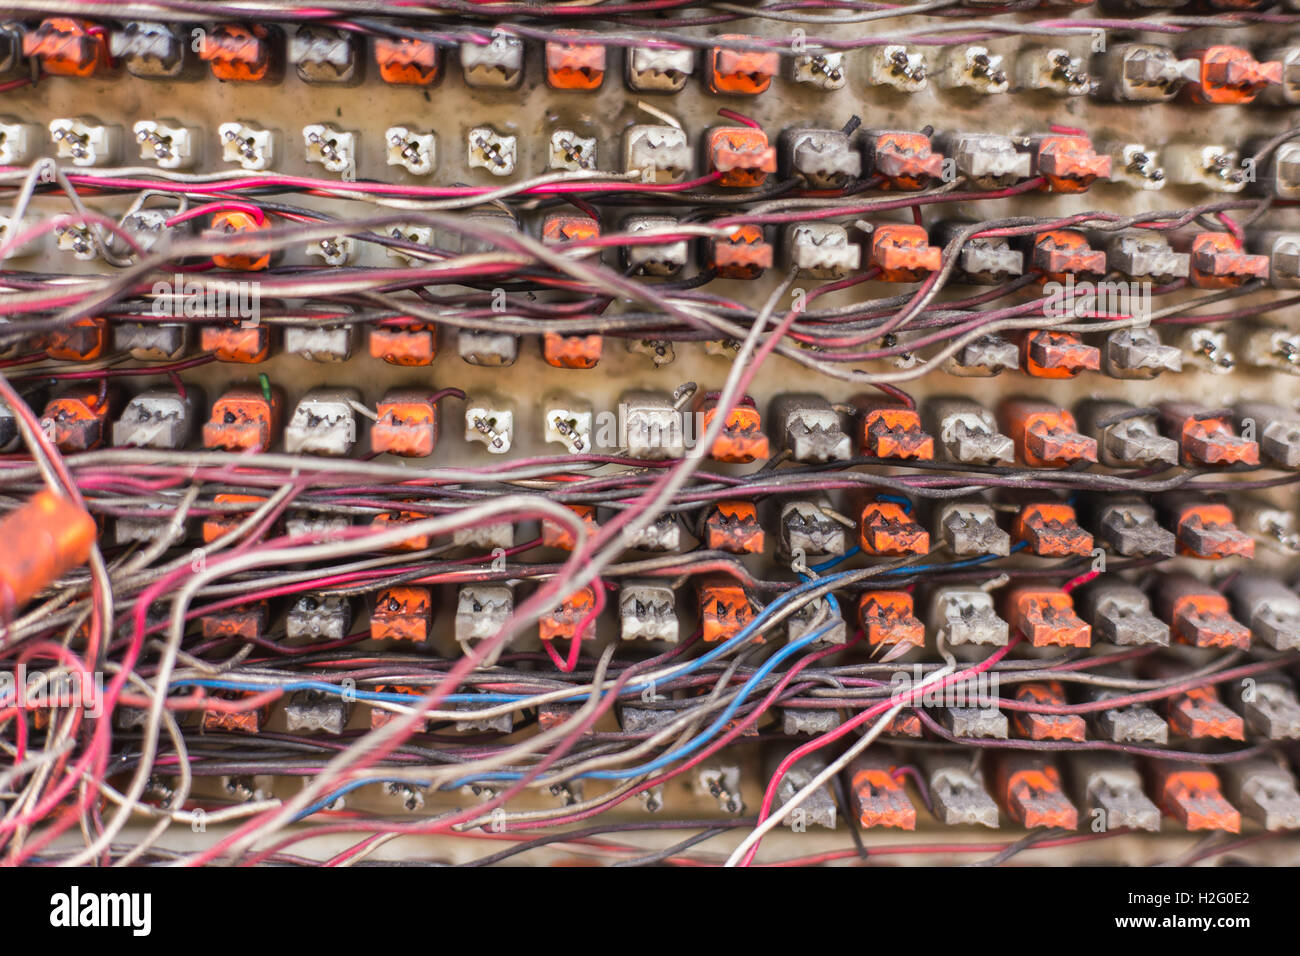 Chaotic Electric Wiring Cables Stockfotos & Chaotic Electric Wiring ...